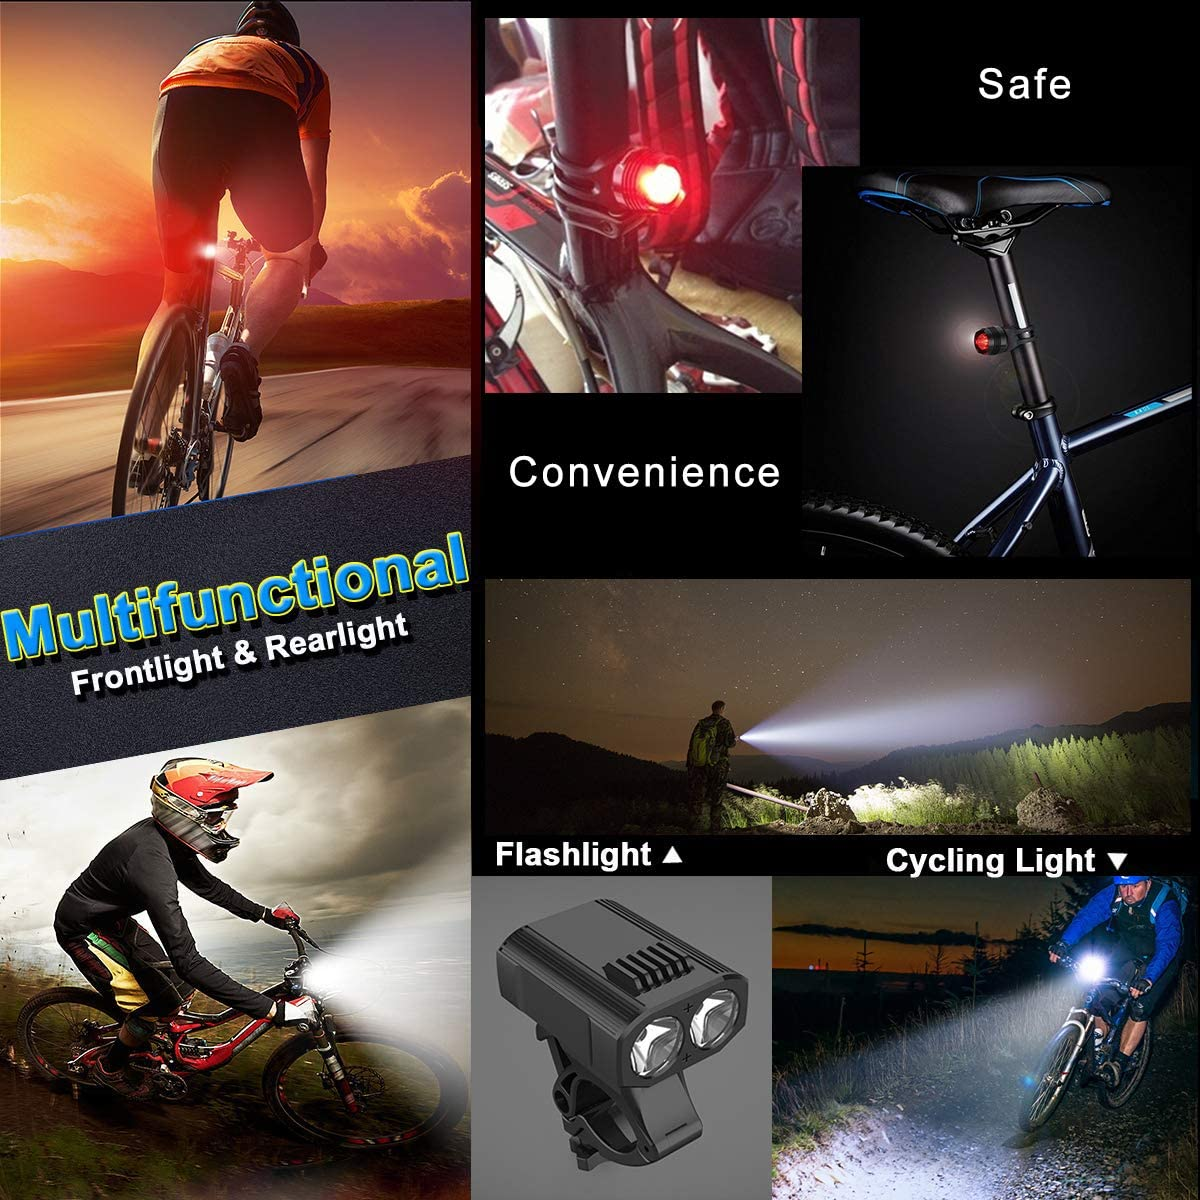 Adjustable Bracket Fit for Cycling IPX6 Waterproof CreBeau Bike Lights Mountain Bike USB Rechargeable LED Bike Light Set 450 High lumen Front and Rear Bicycle Safety Lights